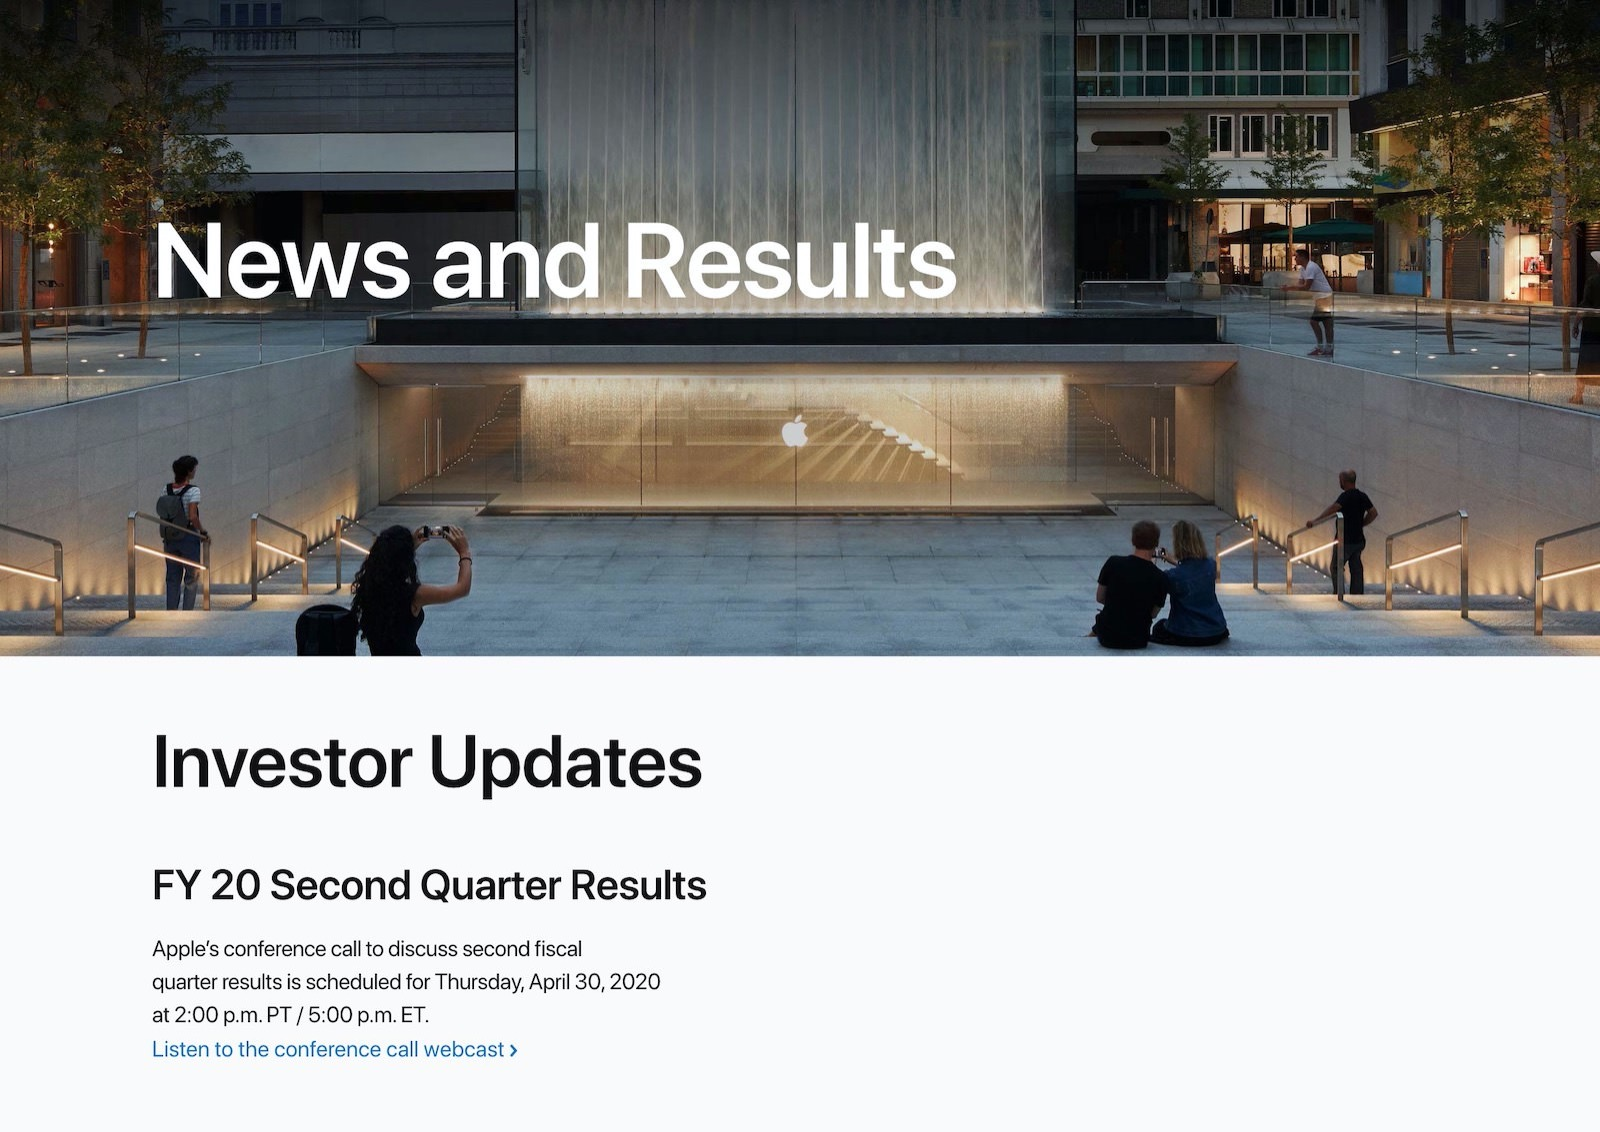 News and results apple investor updates